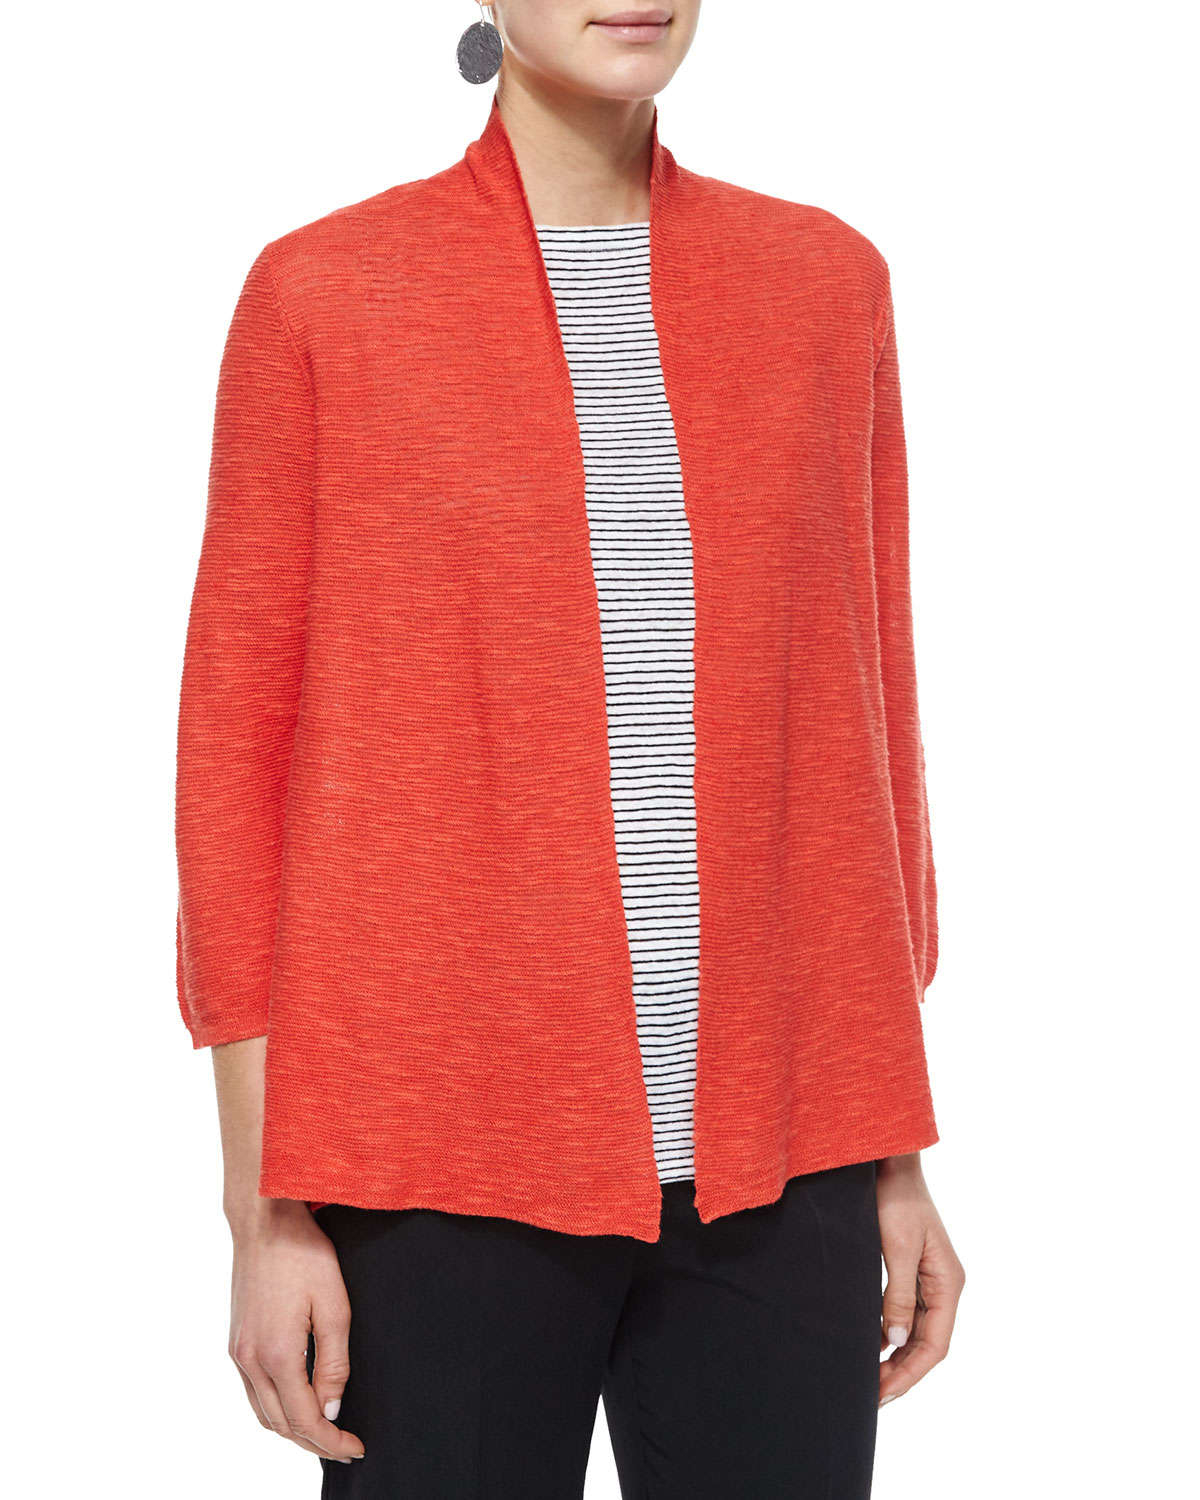 Eileen fisher 3/4-sleeve Organic Linen Cotton Cardigan in Orange ...